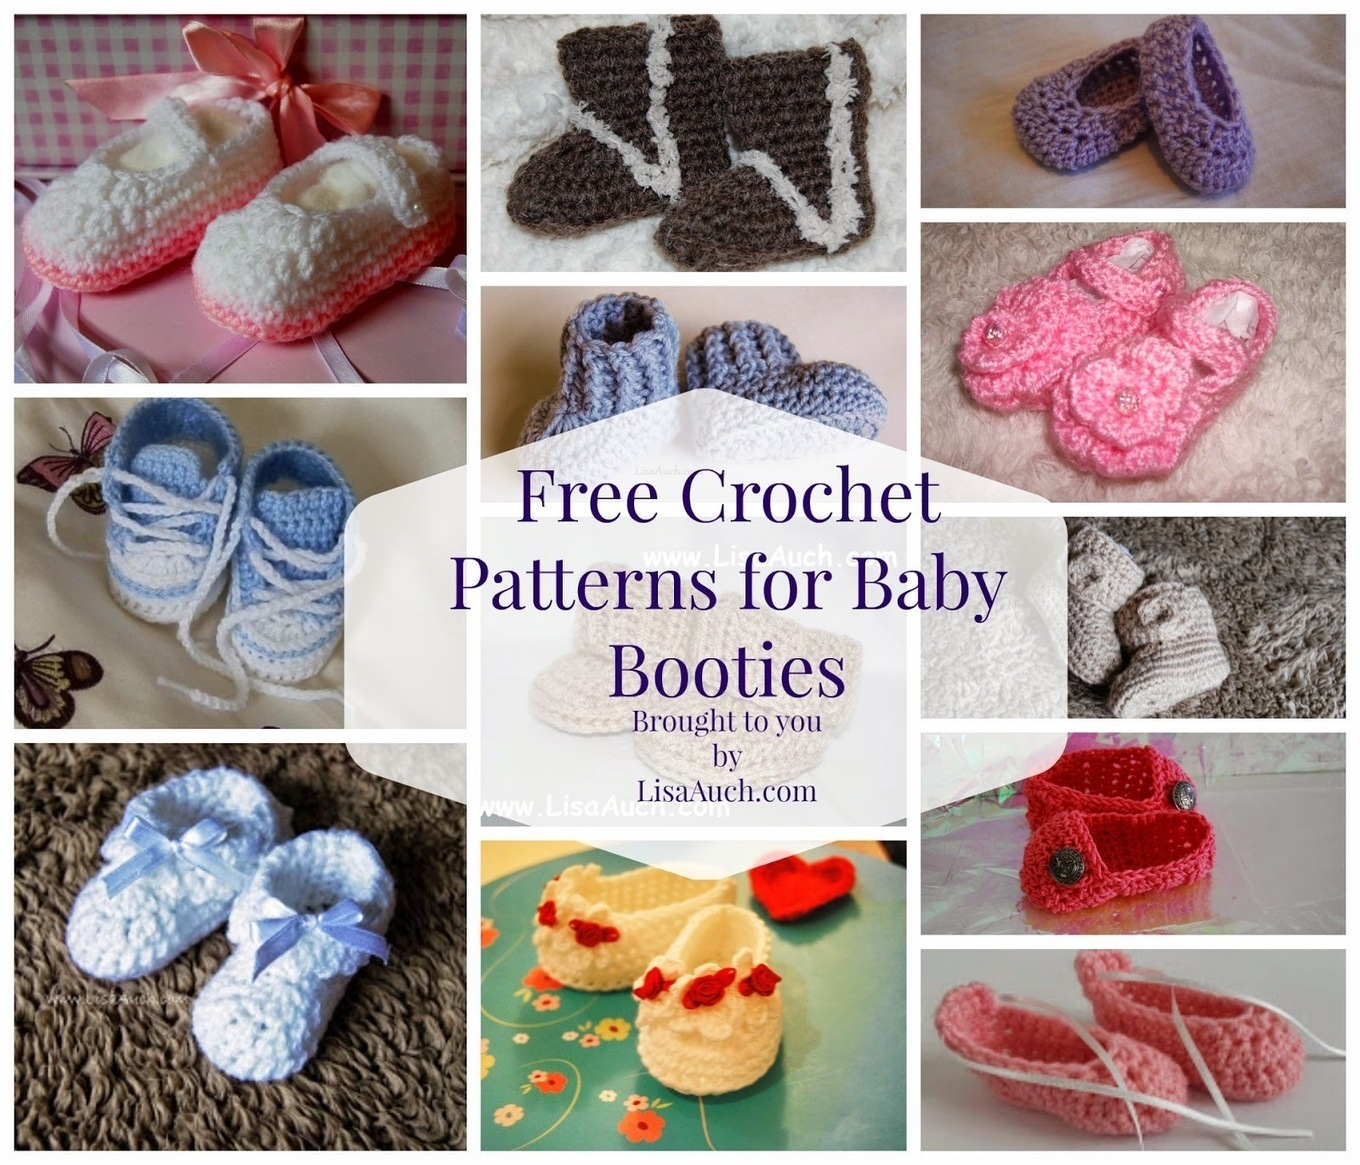 Amigurumi Baby Booties Free Pattern : Free Crochet Patterns and Designs by LisaAuch: